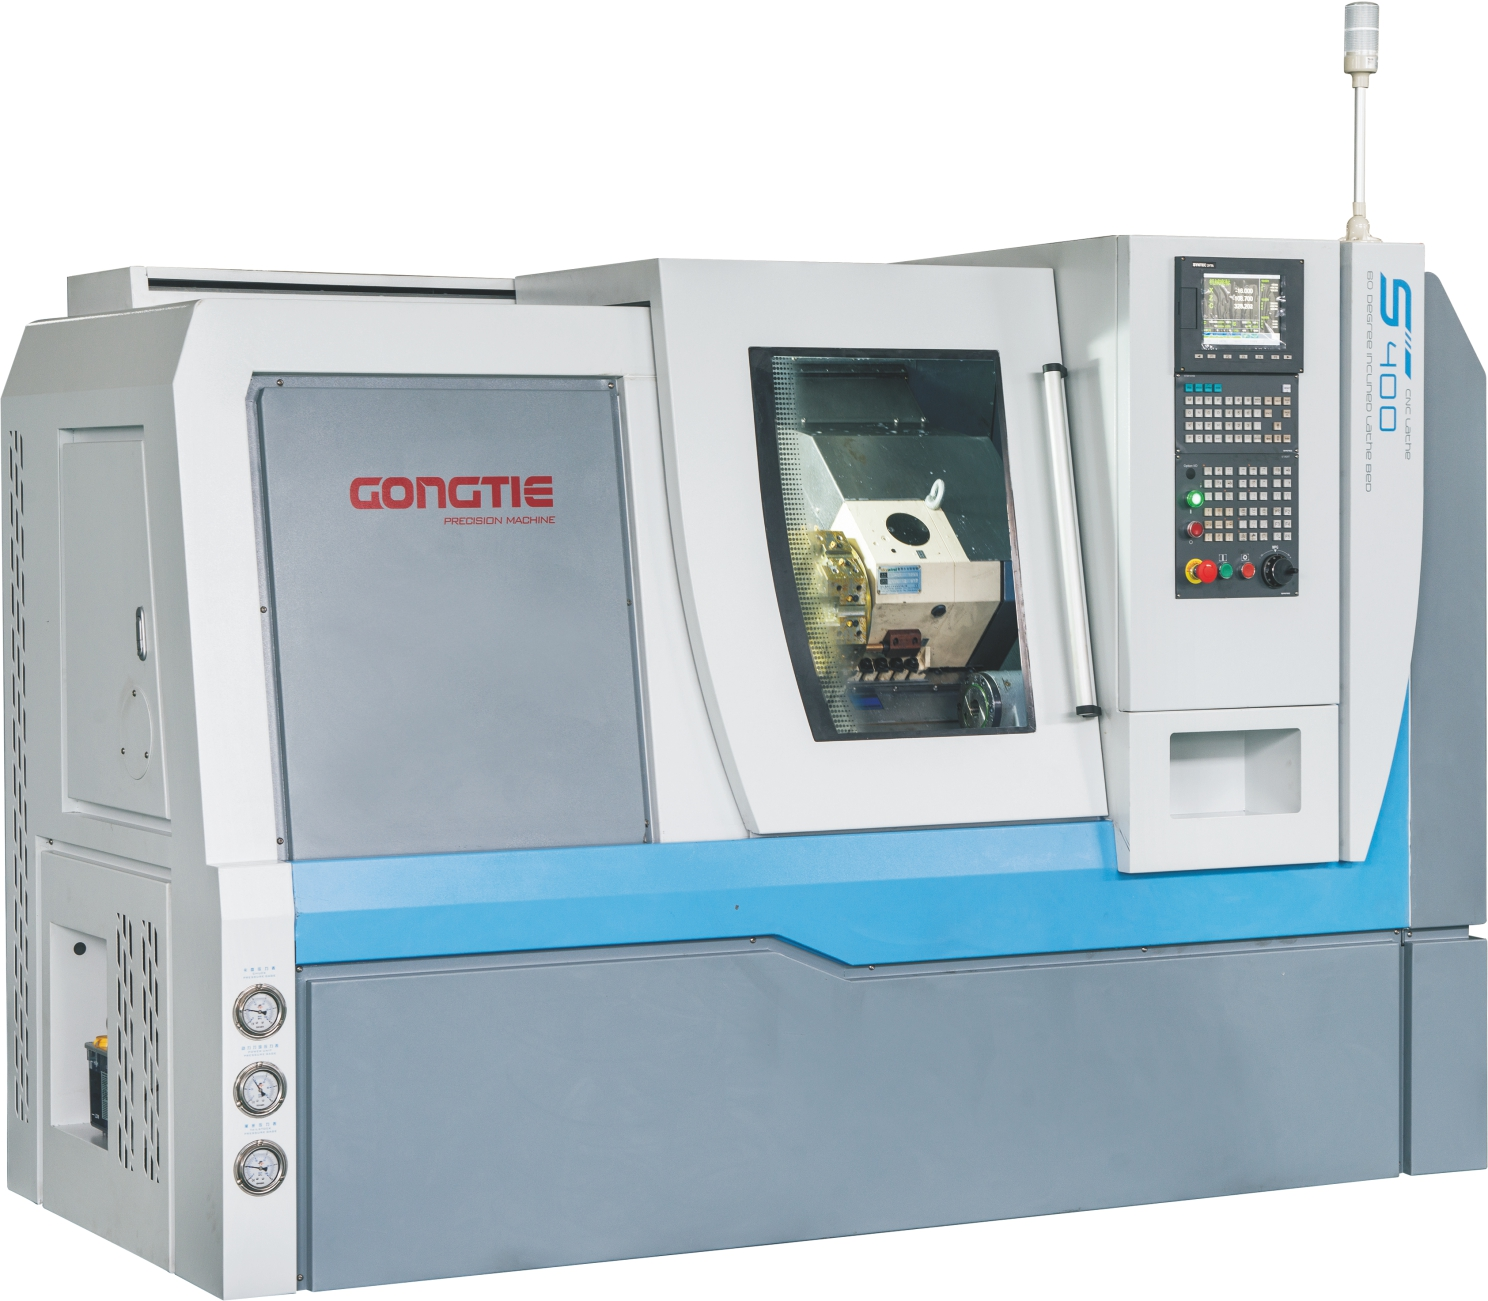 GP340 SERIES CNC LATHE WITH SLANT BED IN TURRET